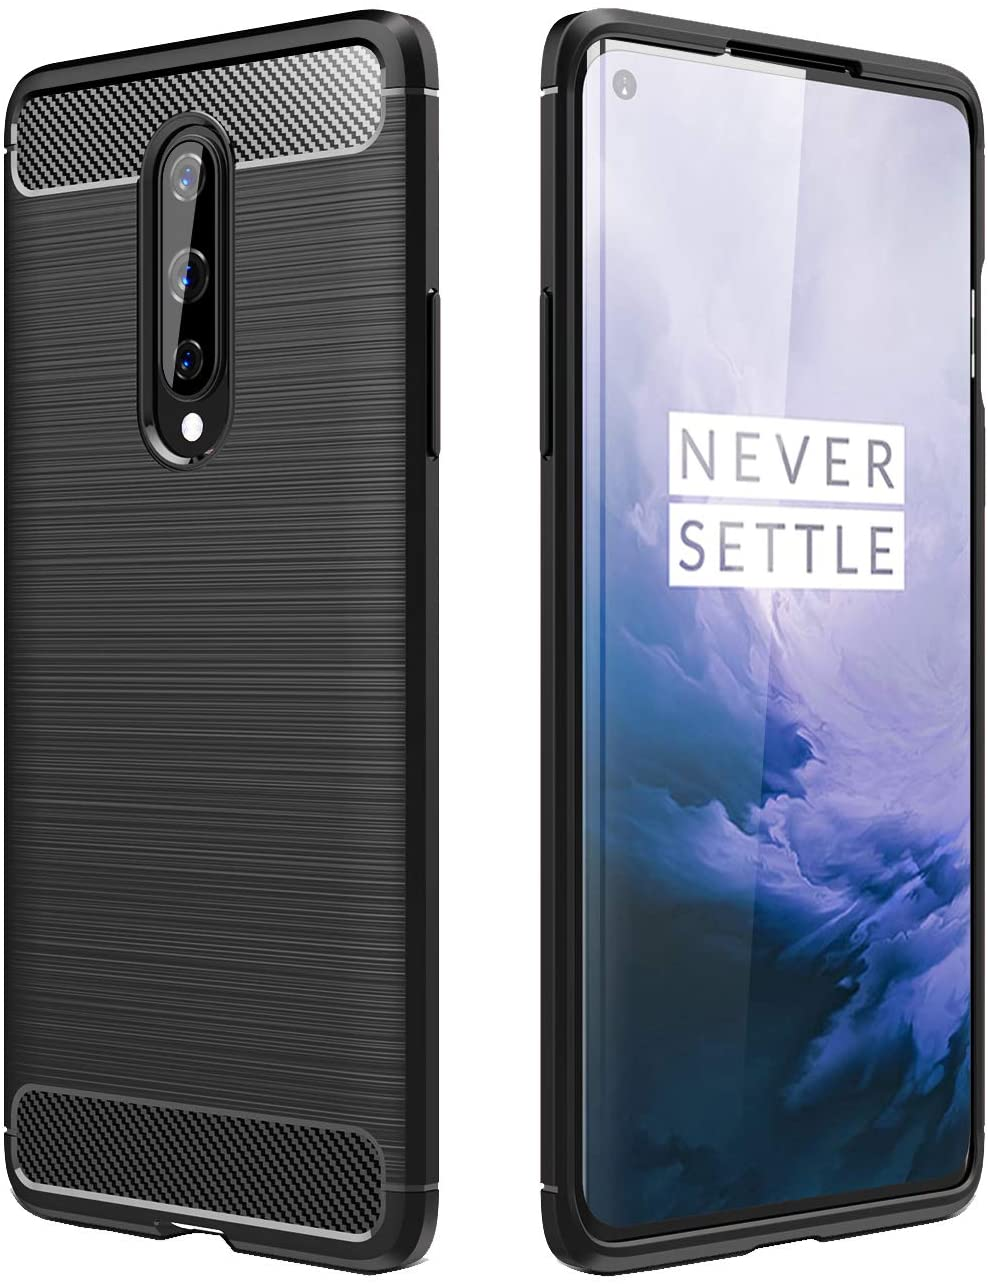 Avesfer for OnePlus 8 Case [Not Compatible with Verizon Version] Slim Fit Thin Resilient Flexible Soft TPU Cover [Anti-Slip][Shock-Proof][Scratch Resistant] Carbon Fiber Protective Case (Black)